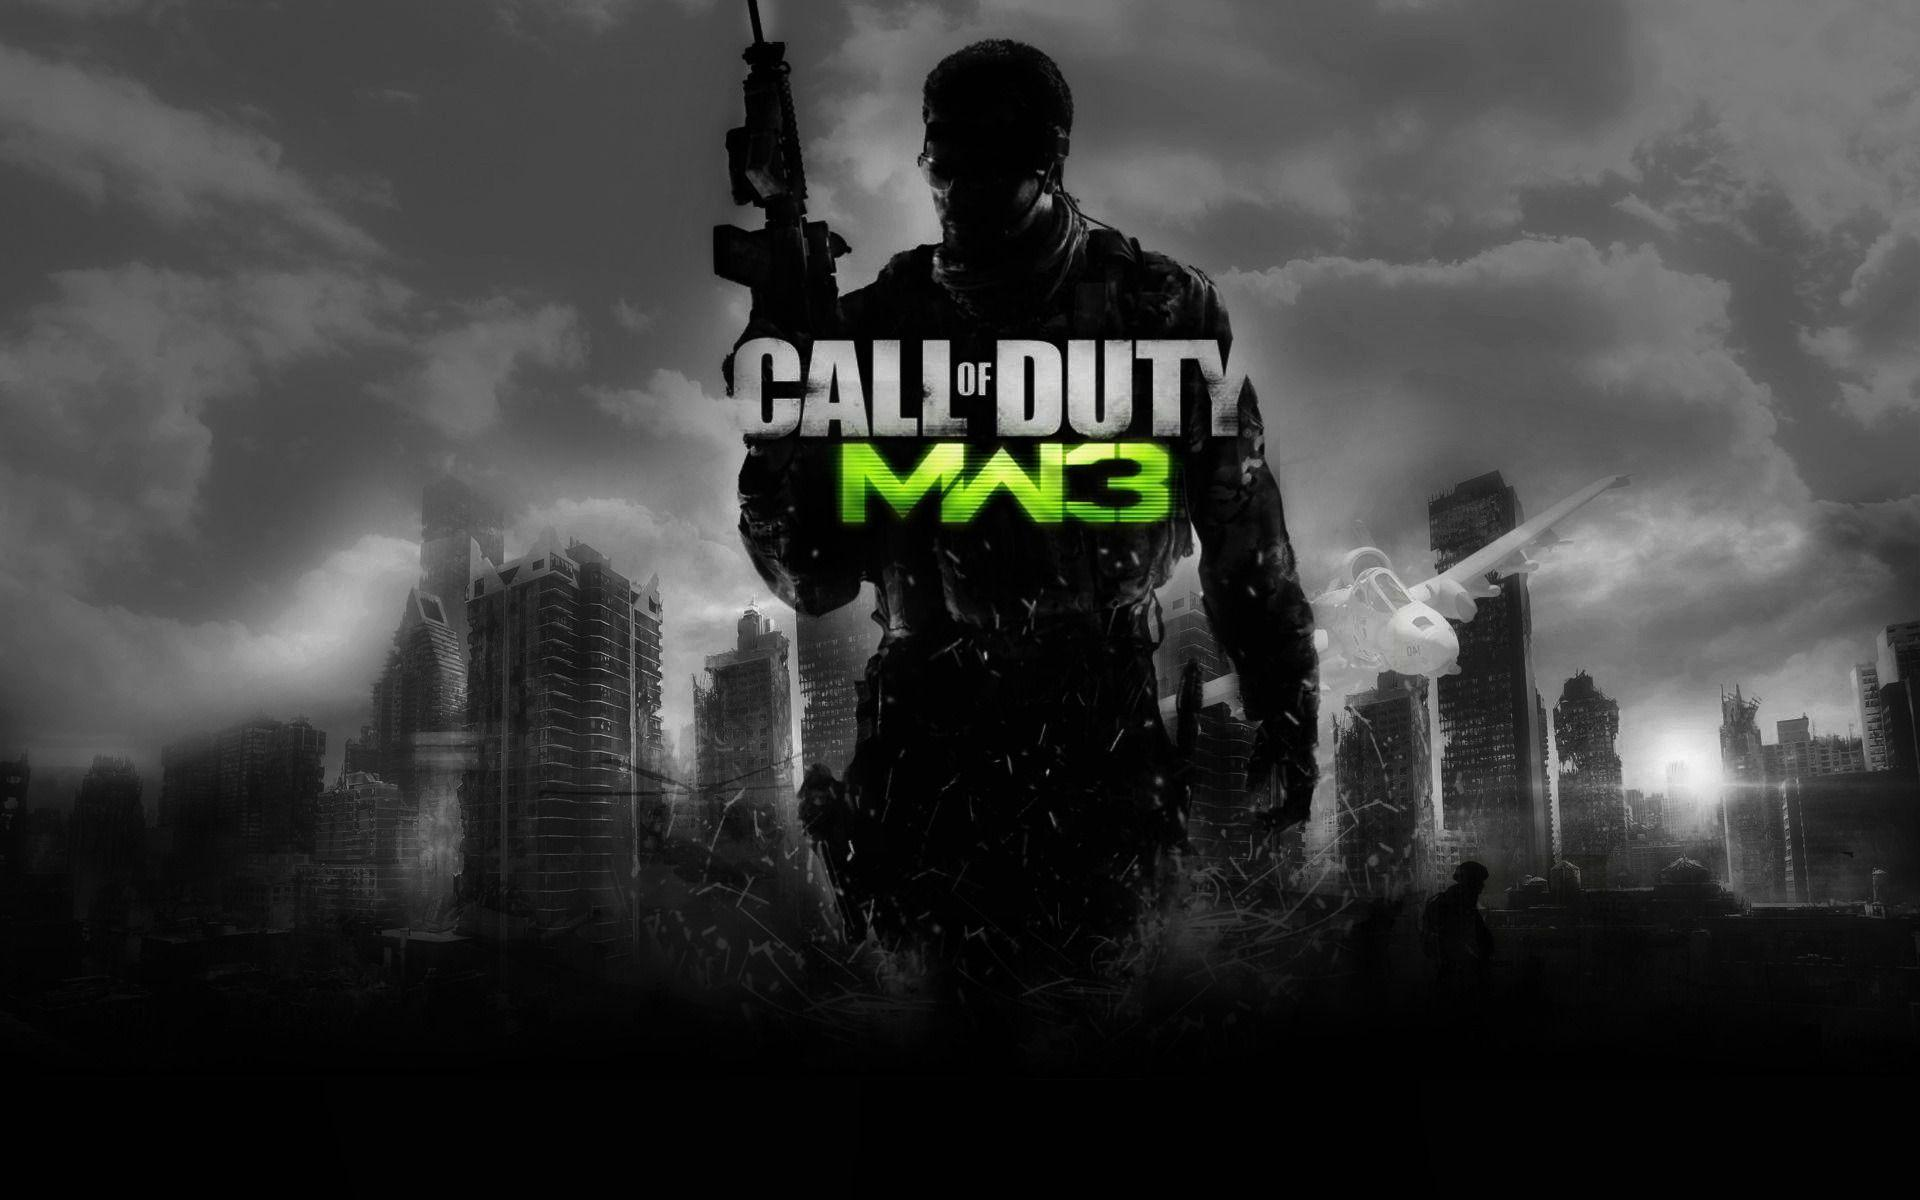 Call Of Duty Mw3 Wallpaper Hd 1080p